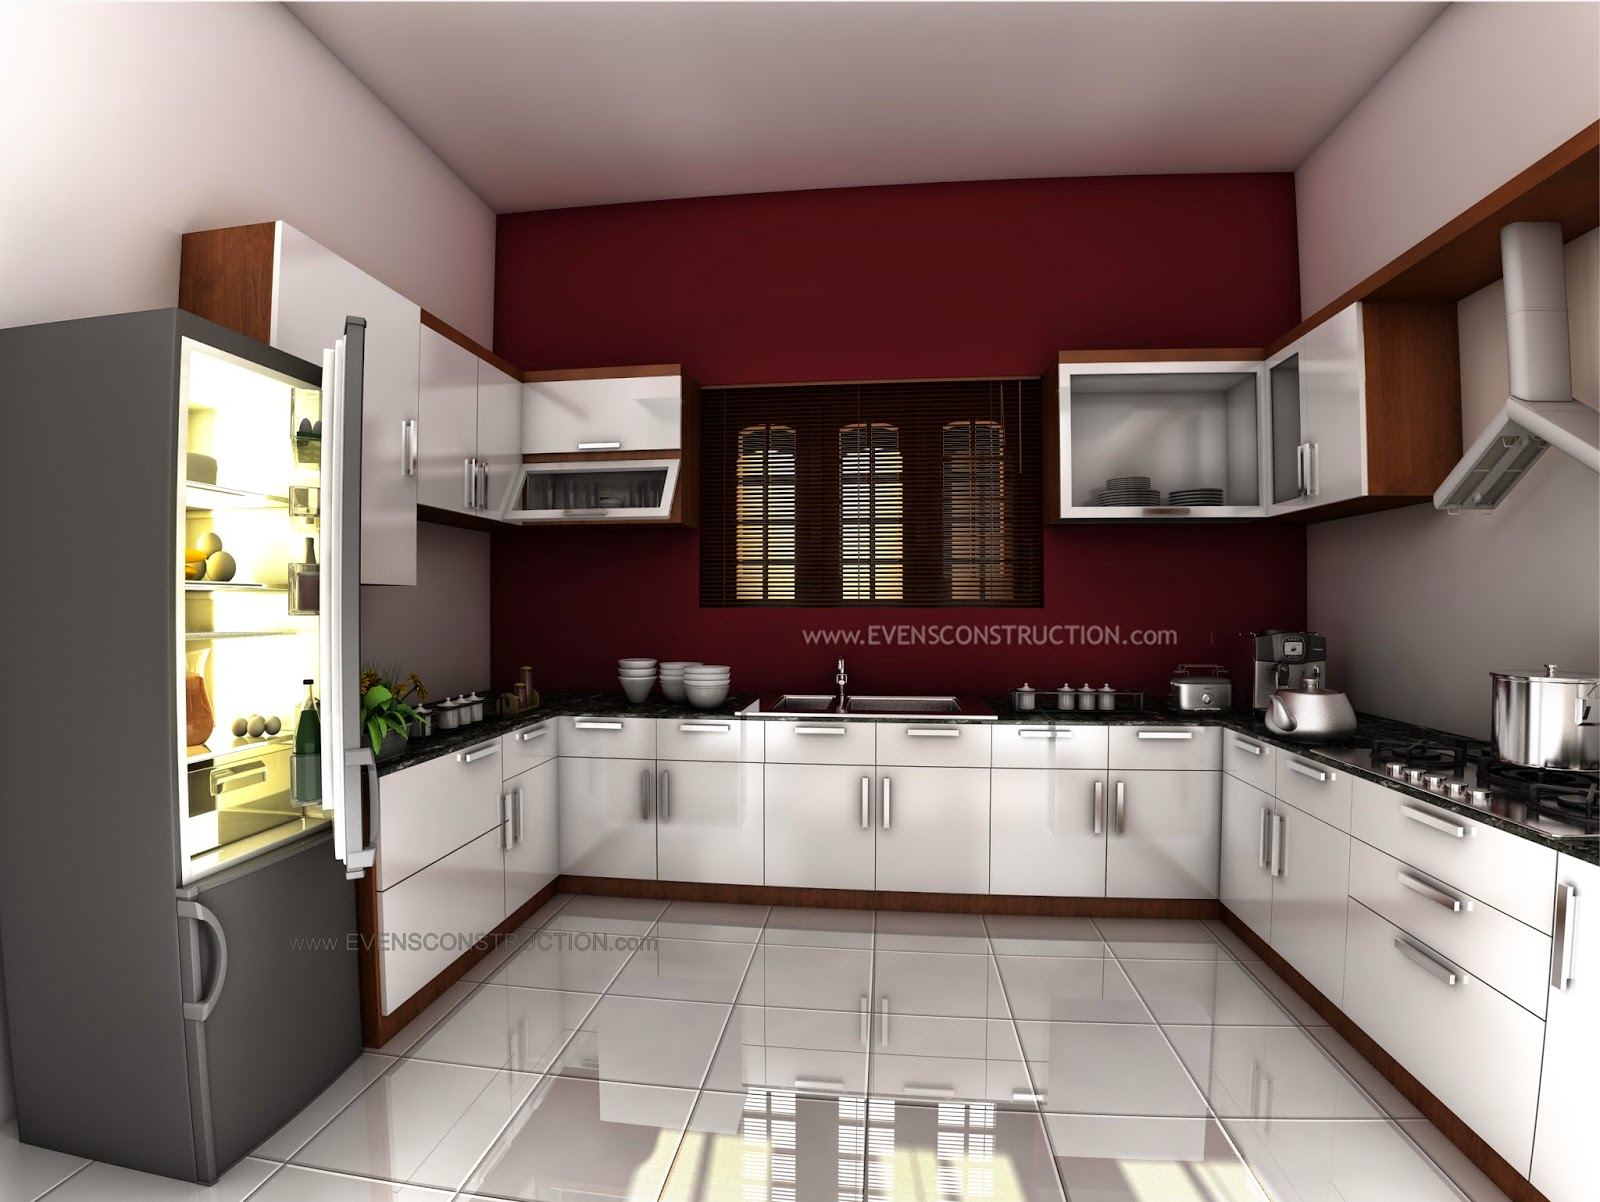 Evens construction pvt ltd beautiful kerala kitchen for New kitchen designs in kerala